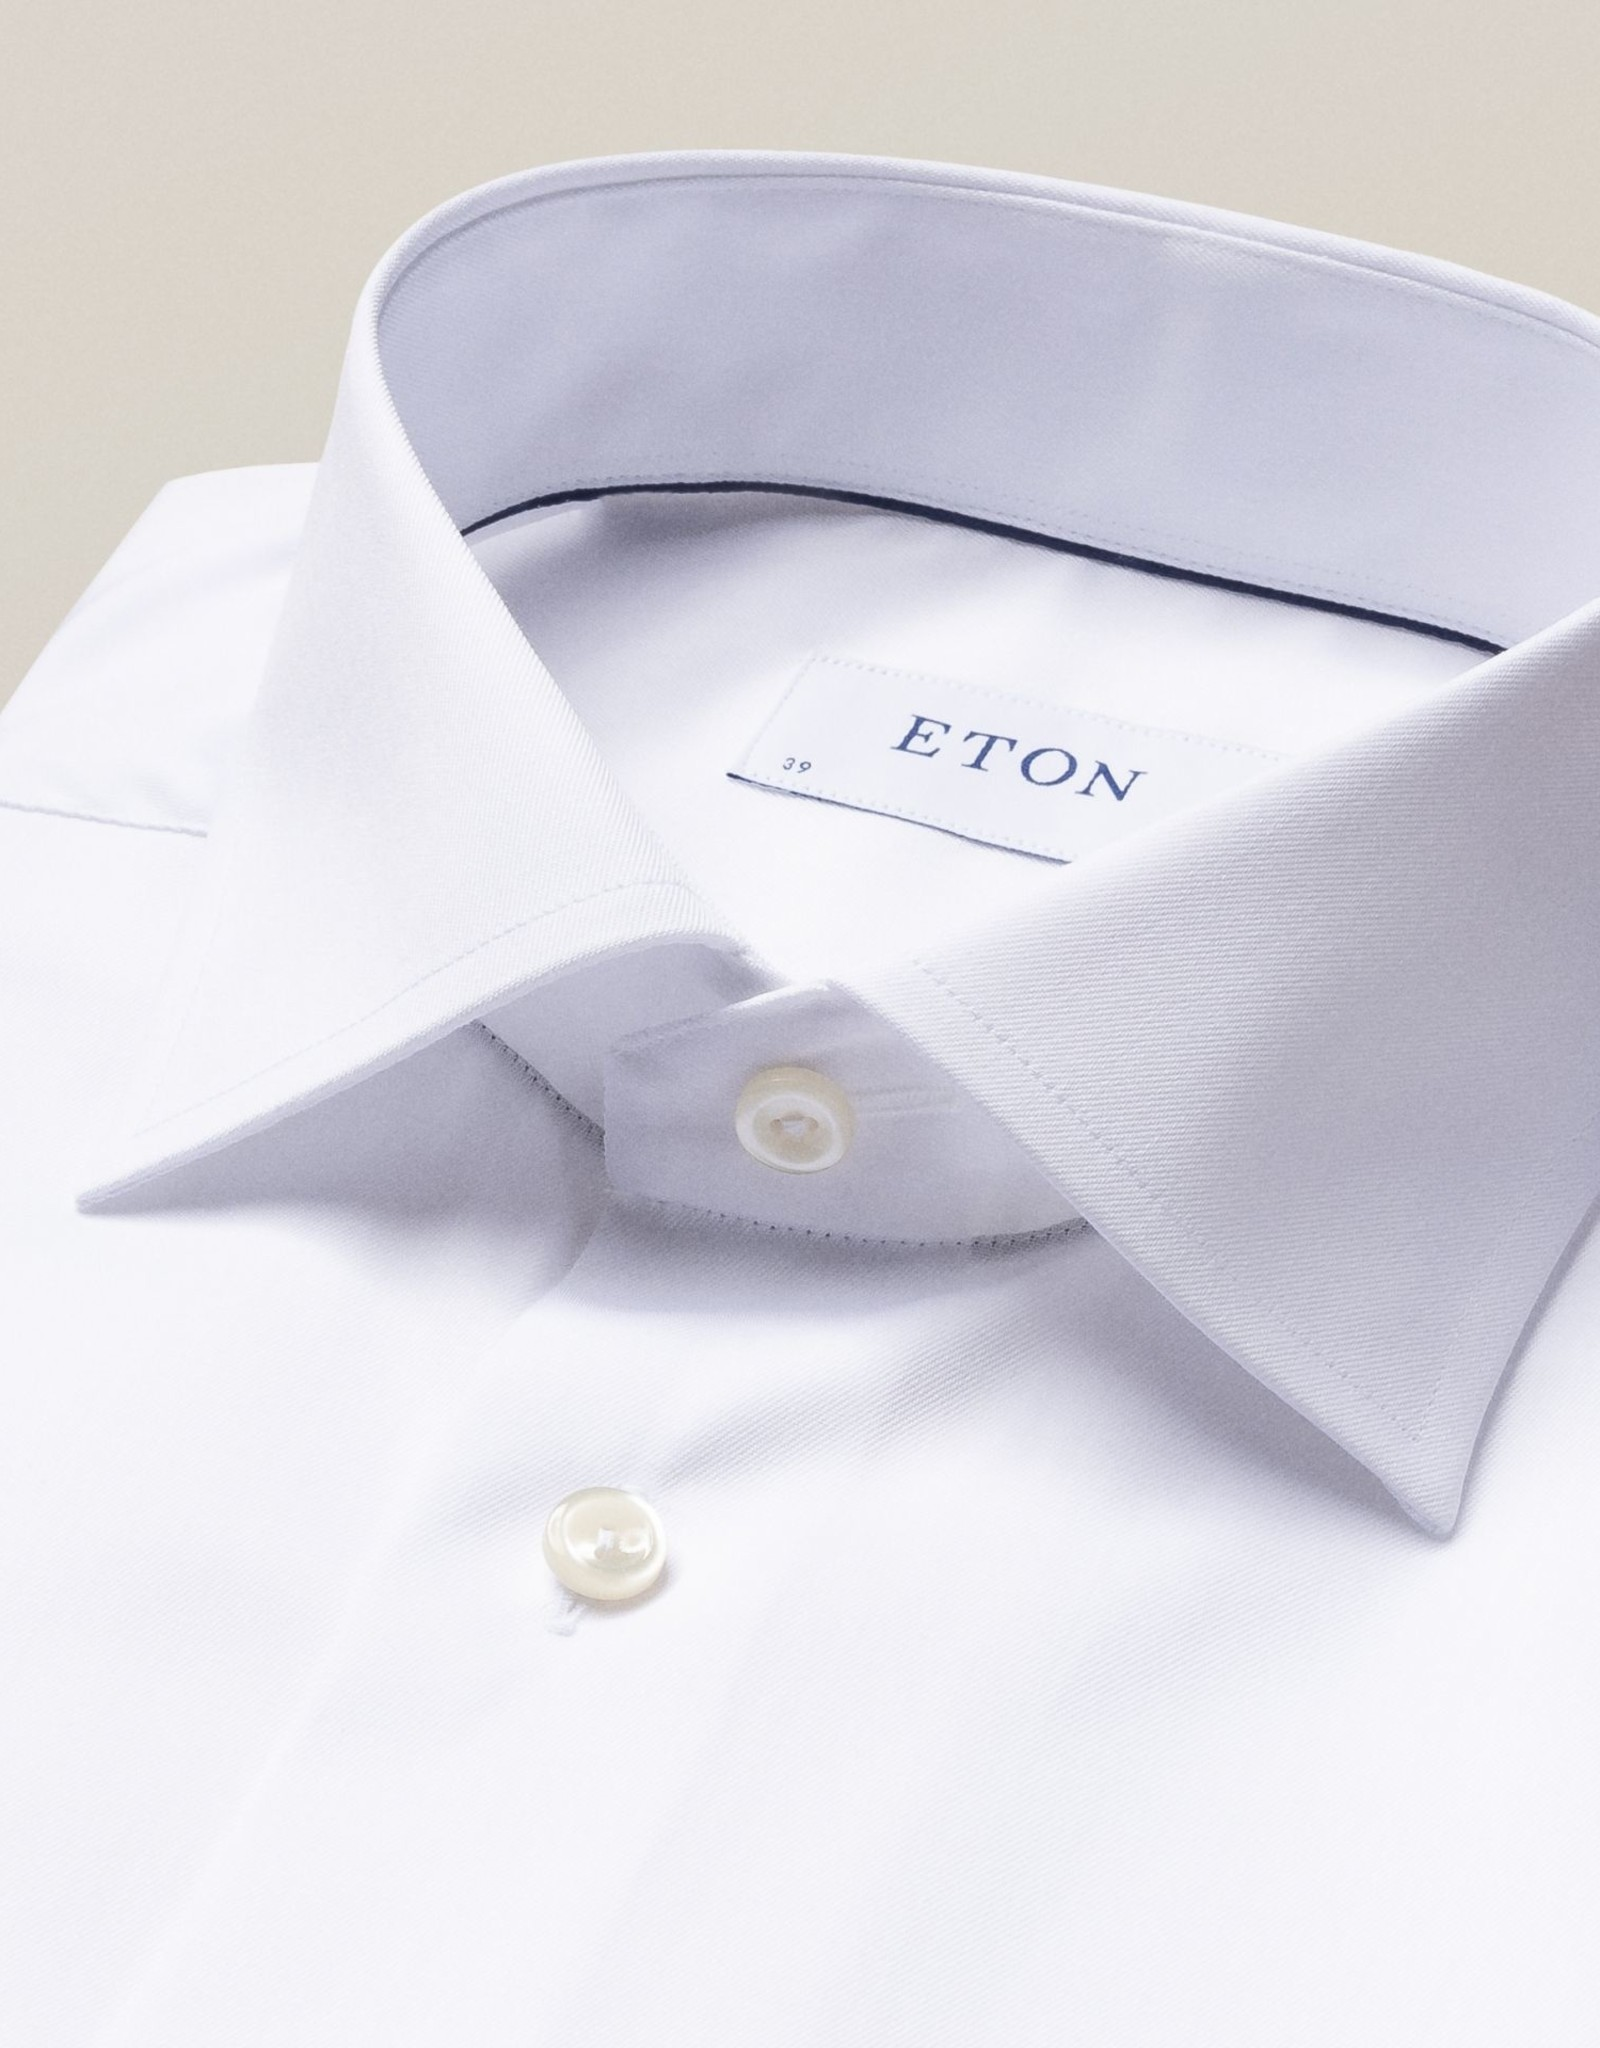 Eton Eton Slim Fit White French Cuff Dress Shirt